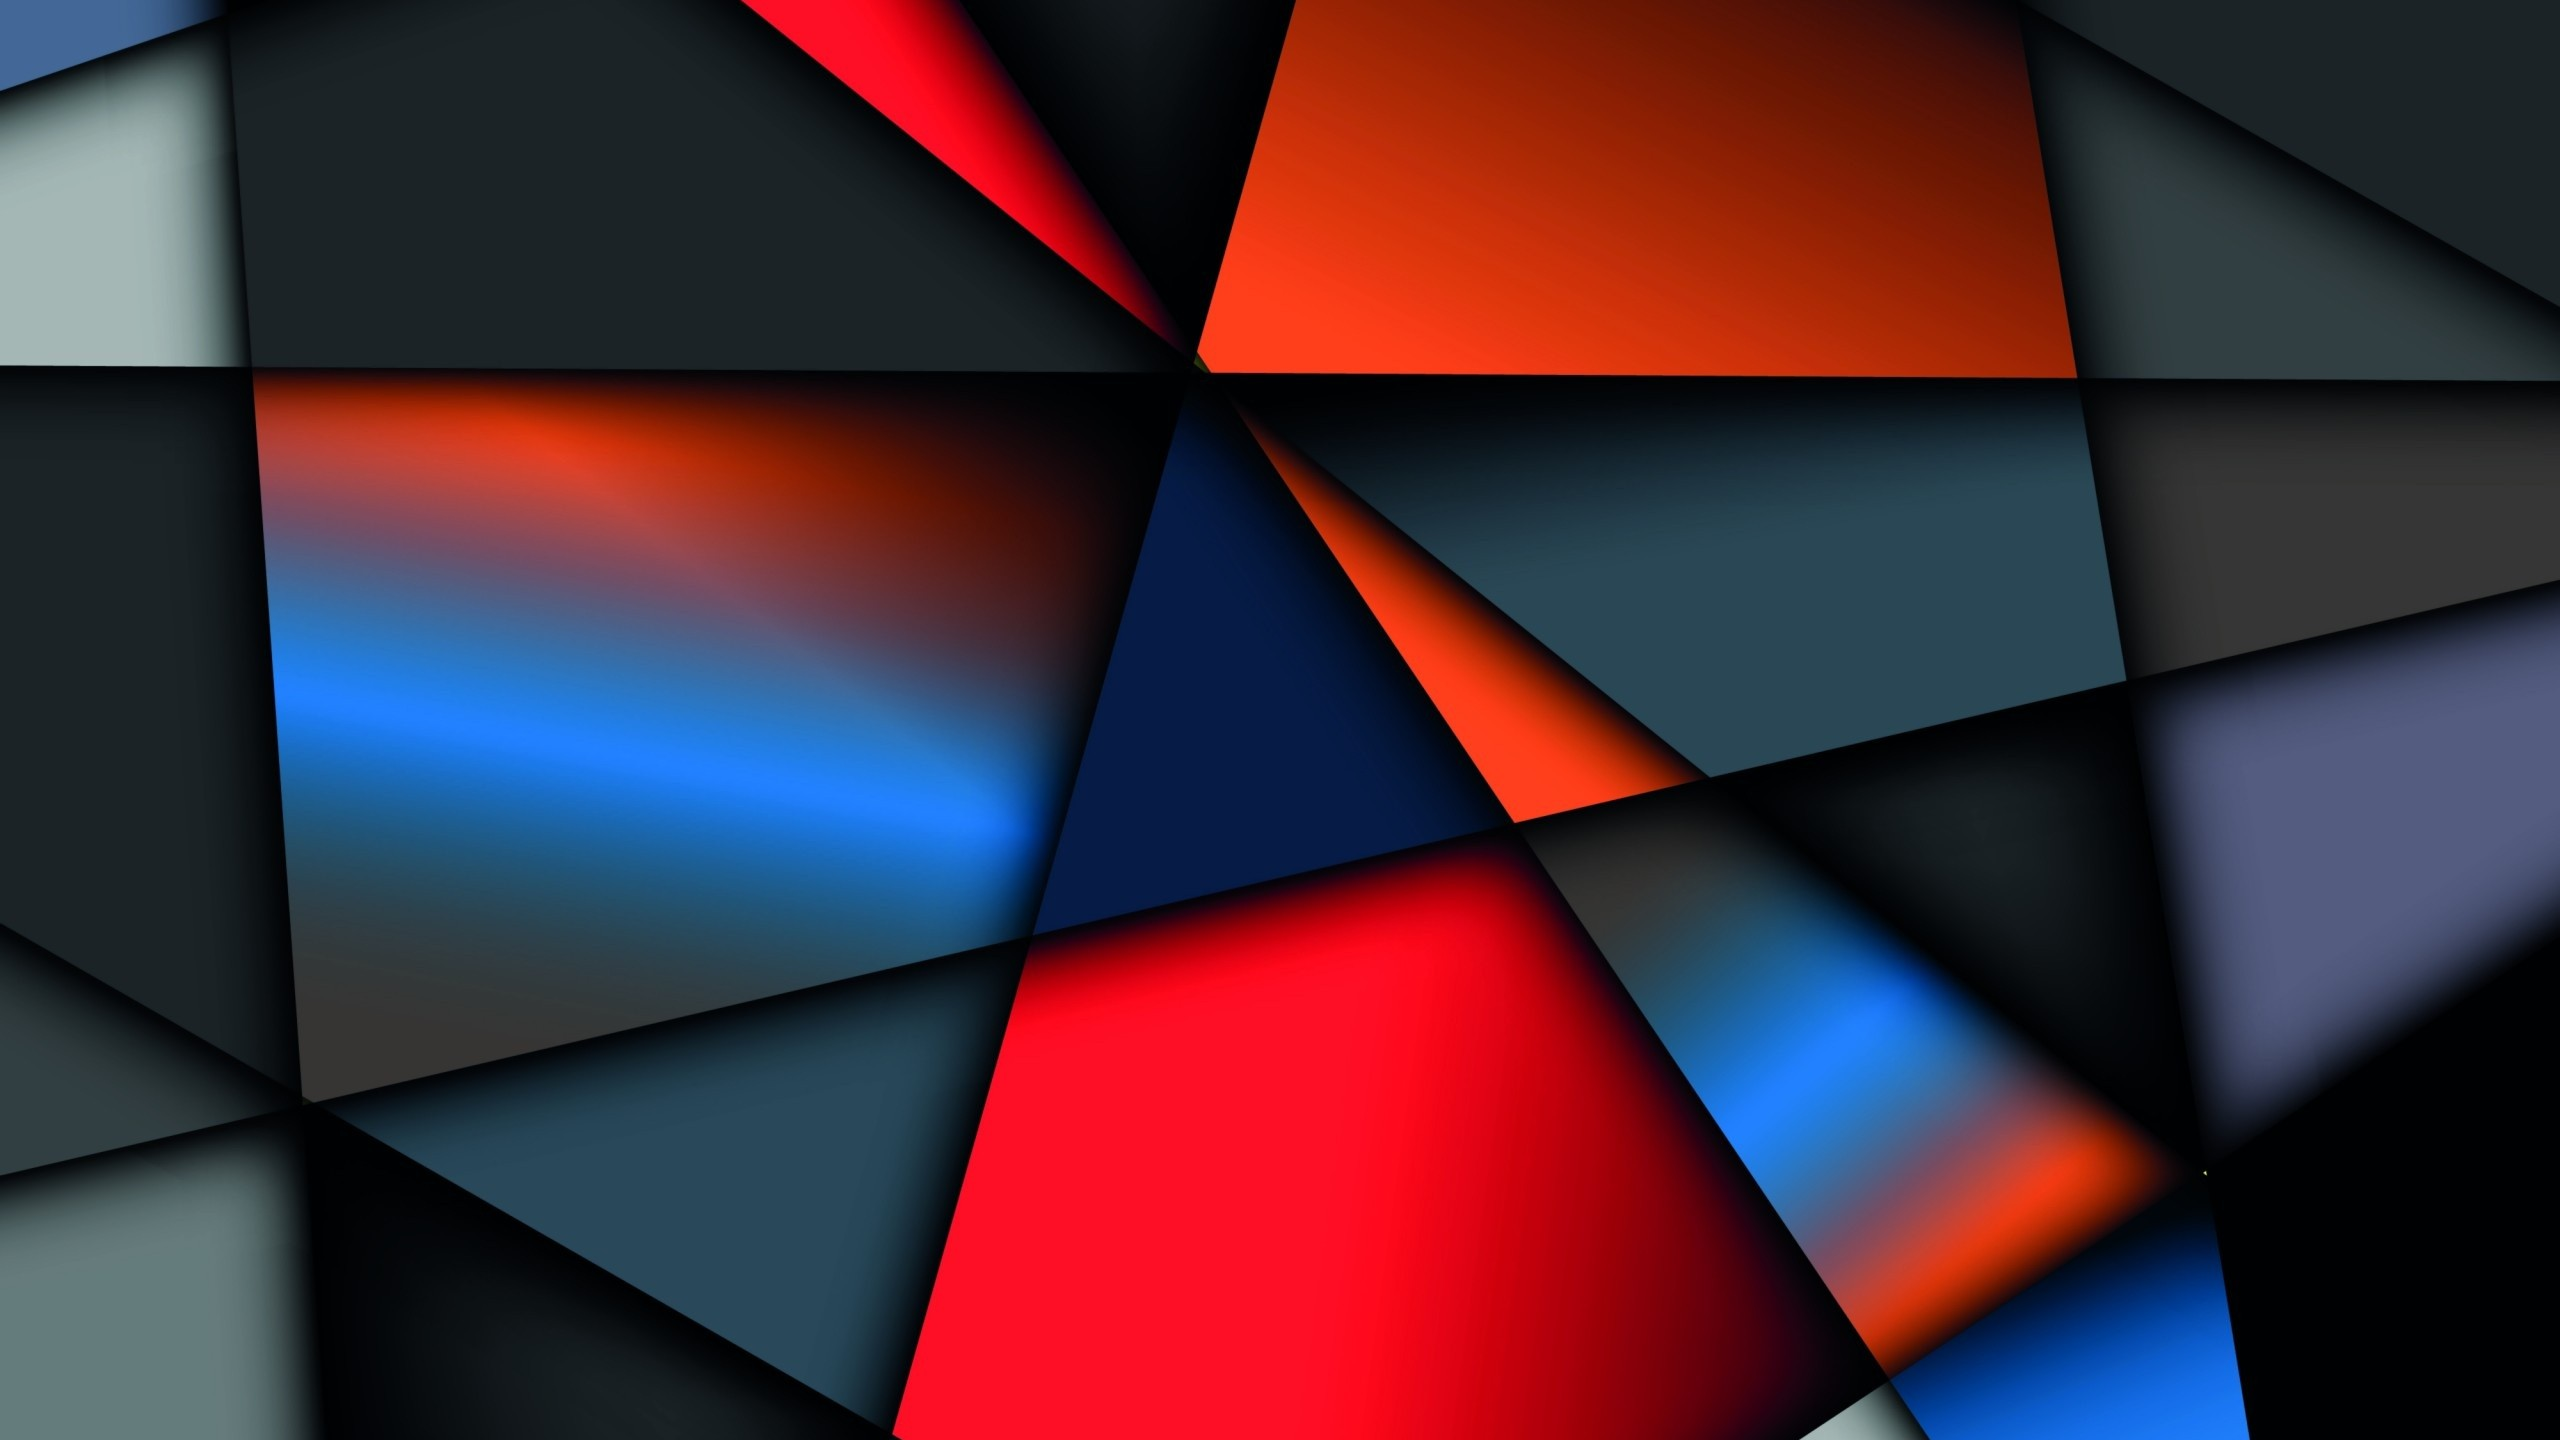 3d And Abstract Ultra Hd Wallpapers 53 2560x1440 Smarthouse